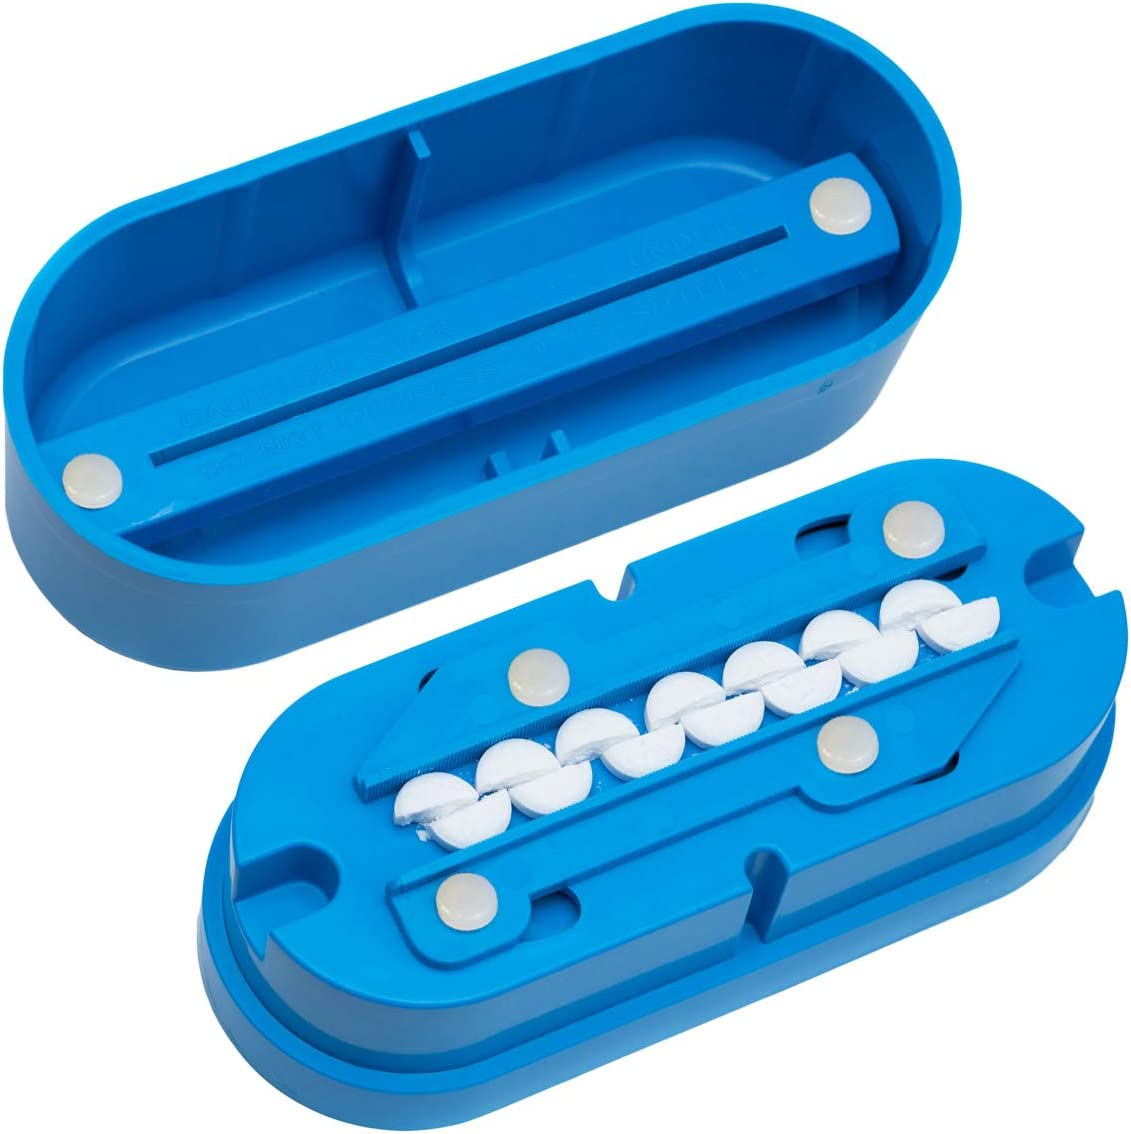 Multiple Pill Splitter. Original Patented Design, with Accurate Pill Alignment, Sturdy Cutting Blade and Blade Guard, for Splitting and Quartering Round or Oblong Pills.US Patent No. 9,827,165.: Health & Personal Care